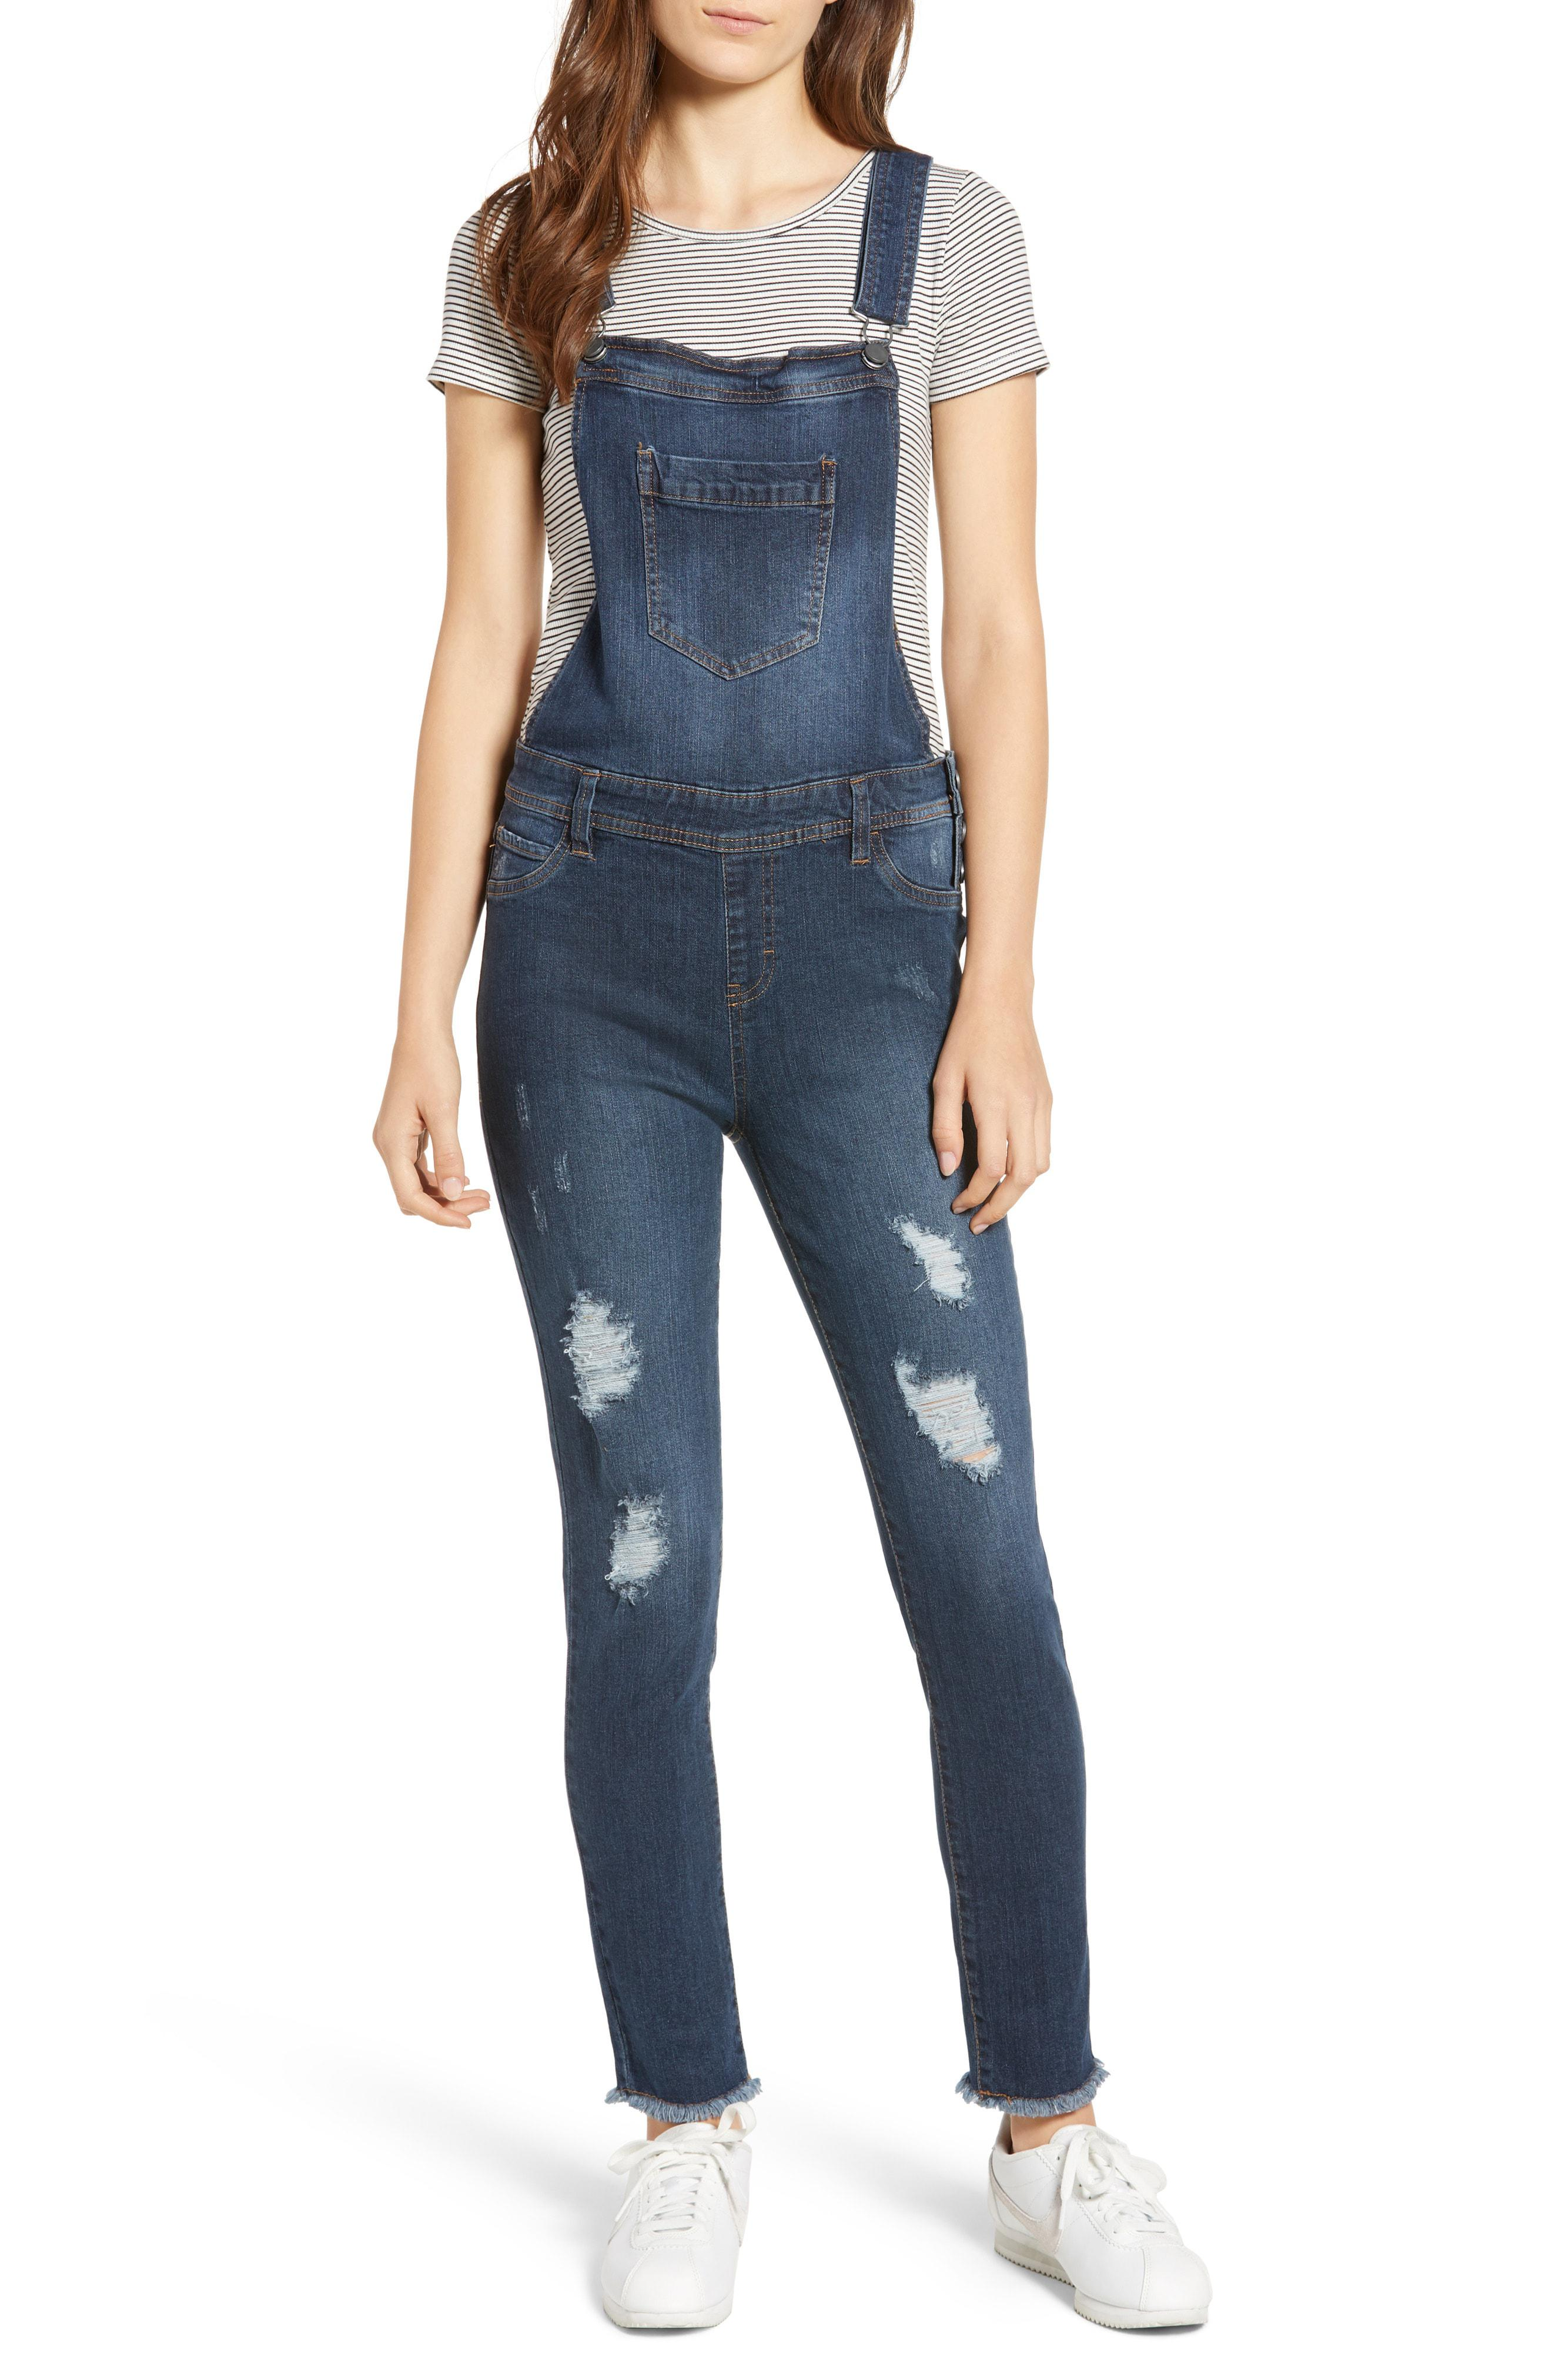 c9a2a1583702 Lyst - Tinsel Ripped Skinny Overalls in Blue - Save 68%